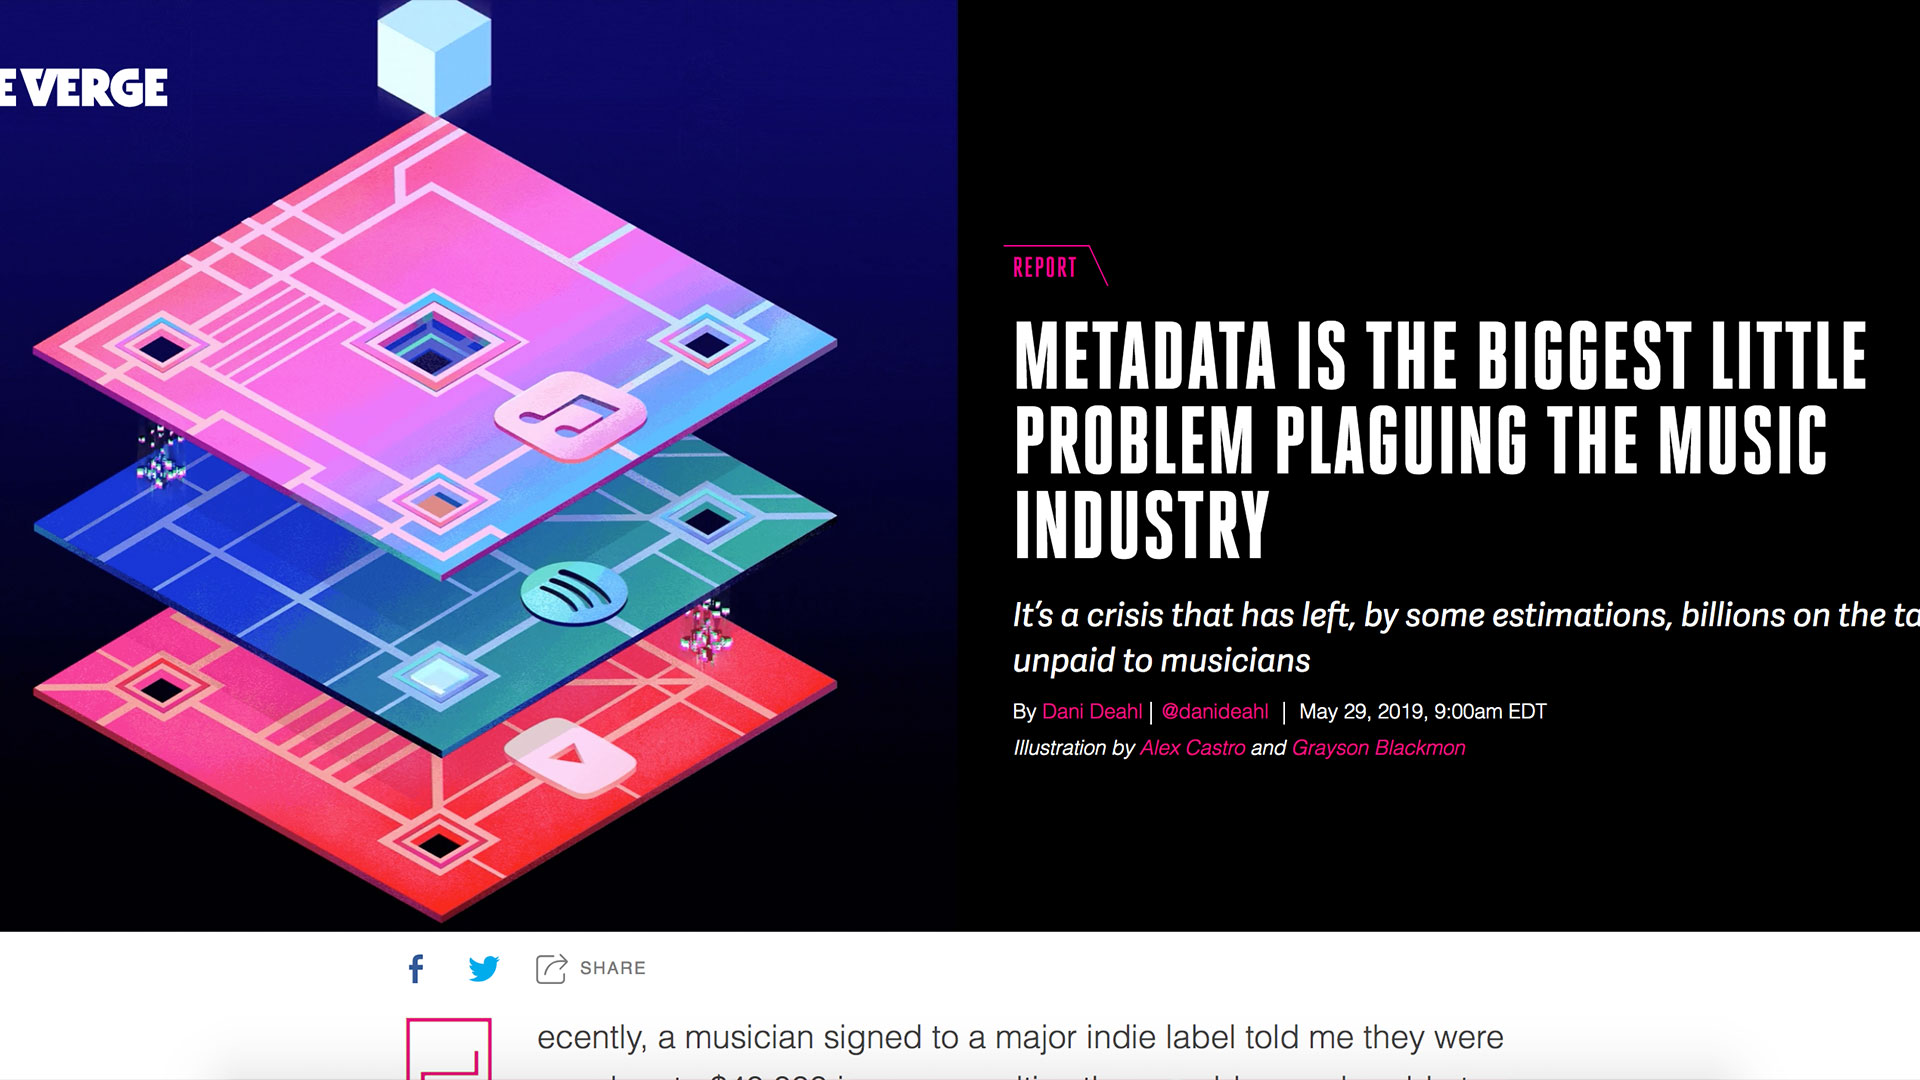 Fairness Rocks News METADATA IS THE BIGGEST LITTLE PROBLEM PLAGUING THE MUSIC INDUSTRY